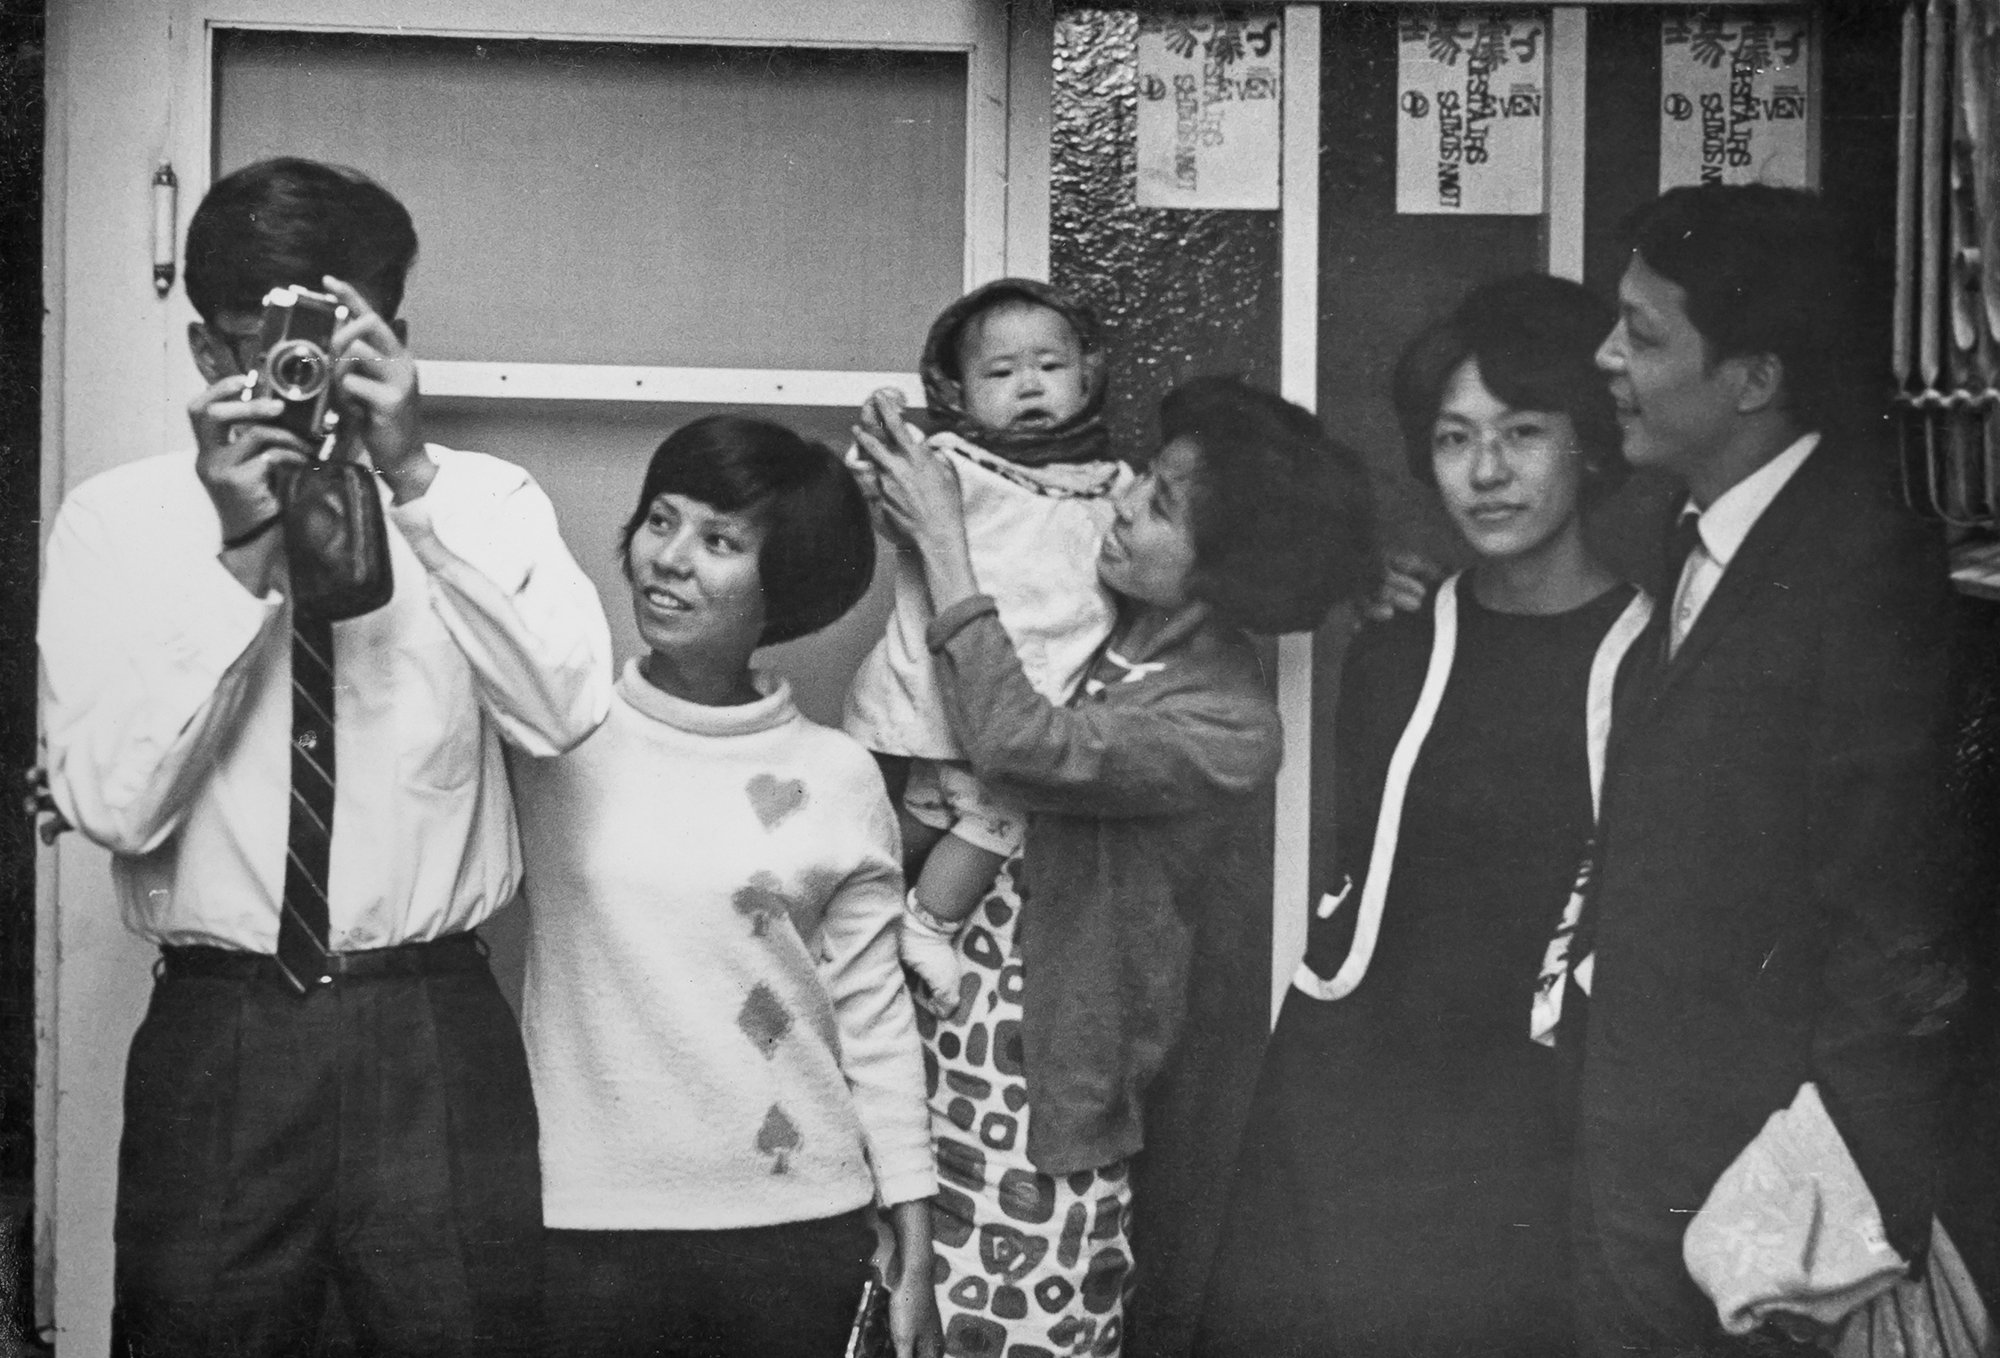 Some of the editors of Theater Quarterly gathering at the house of Chiu Kang-chien: Chiu himself (first left), Chen Xiasheng (center, holding child), and Huang Hua-cheng (first right). (courtesy of Chuang Ling)